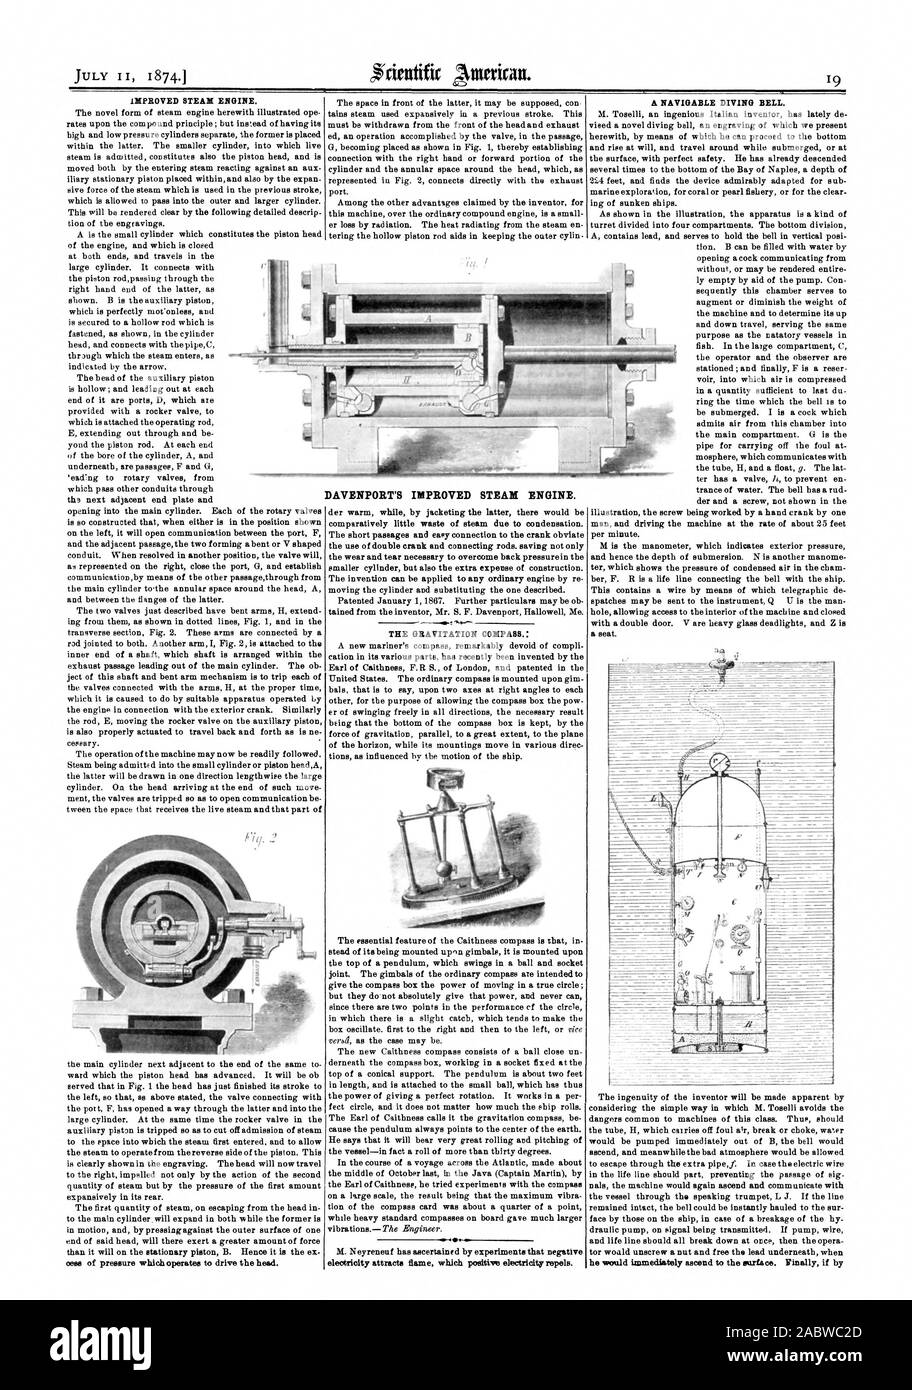 DAVENPORT'S IMPROVED STEAM ENGINE. he would immediately ascend to the surface. Finally if by, scientific american, 1874-07-11 Stock Photo